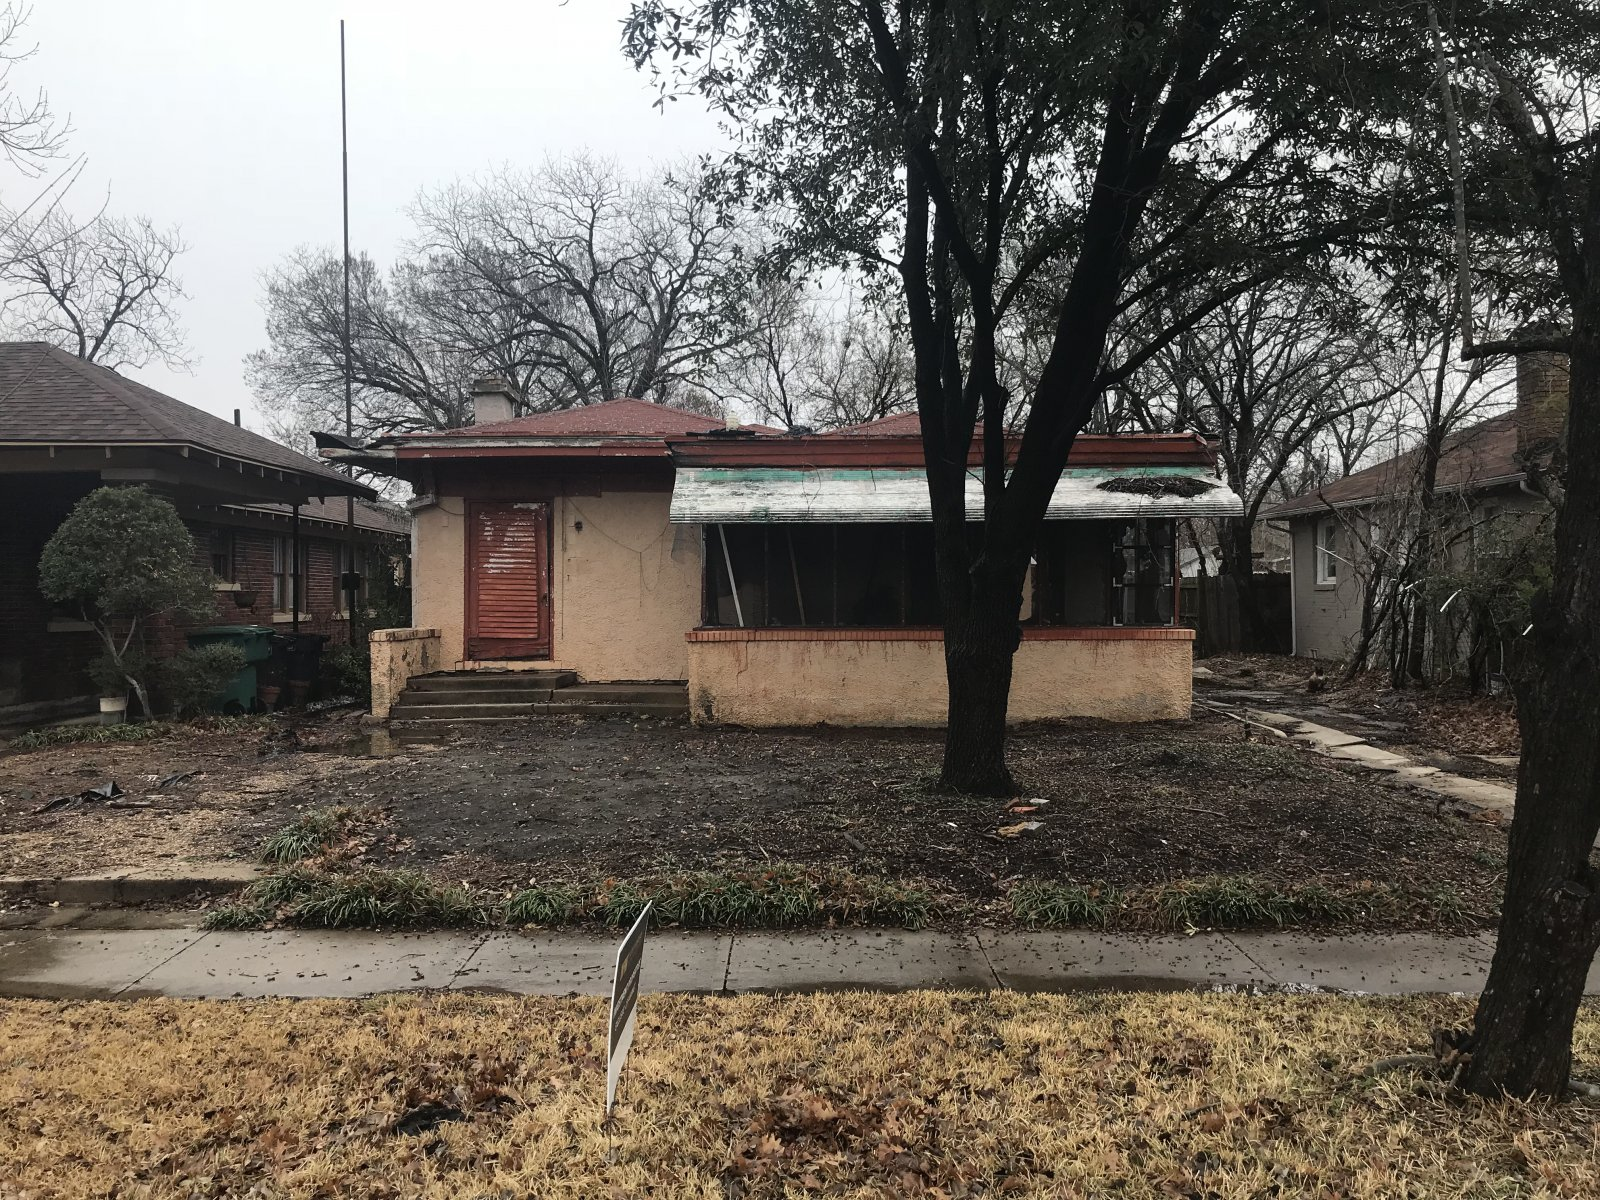 sell my house fast haltom city, We Buy houses in many areas in texas! We purchase damaged house! We will give you cash offer within a few days! Sell your house in Haltom City